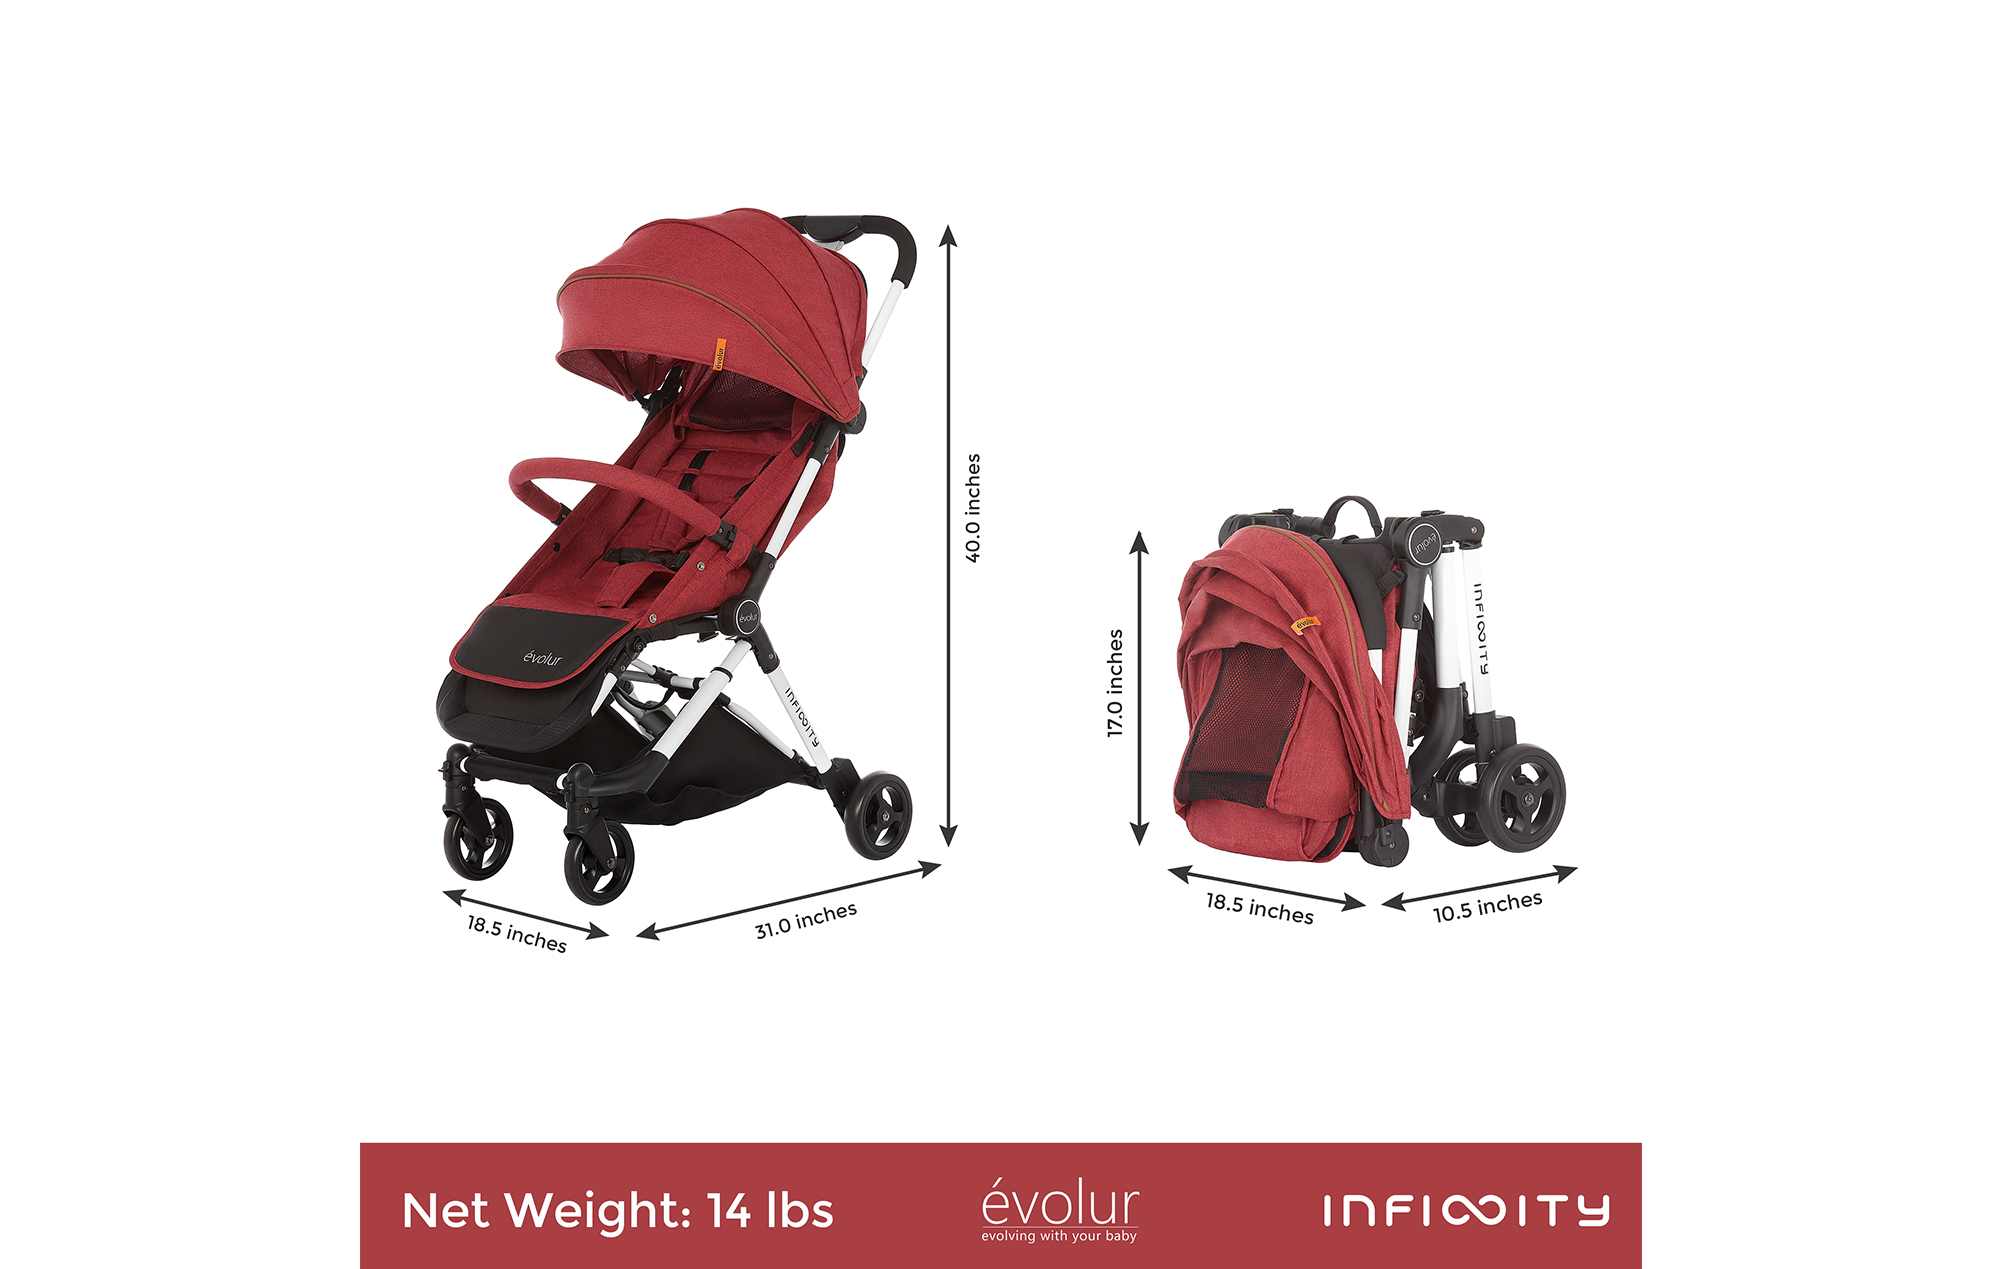 Evolur Infinity Convertible Stroller in Red